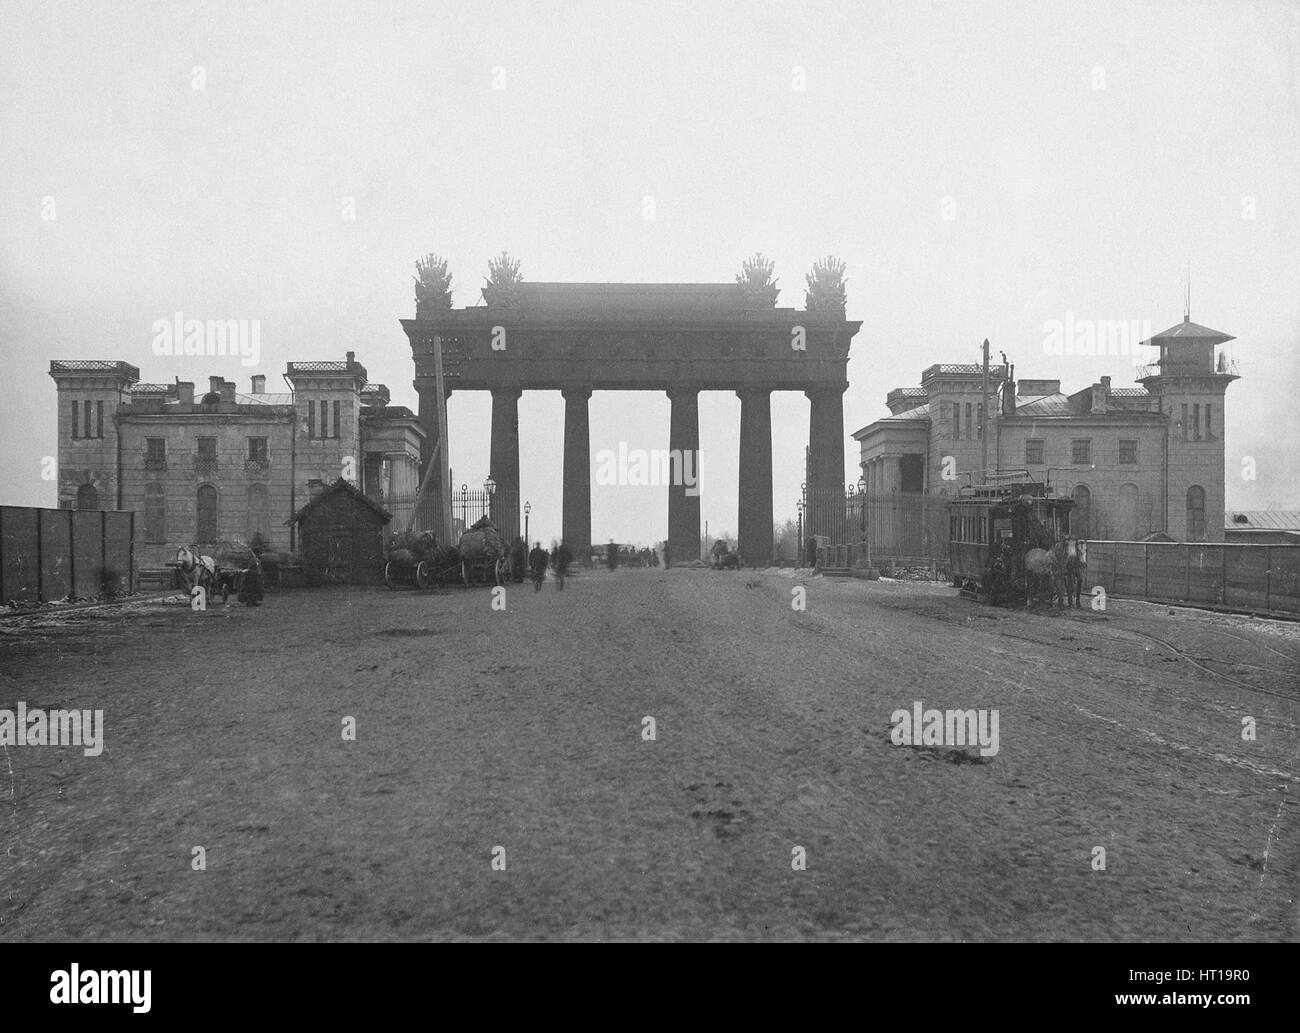 The Moscow Triumphal Gate in St. Petersburg, 1890s. Artist: Bulla, Karl Karlovich (1853-1929) - Stock Image